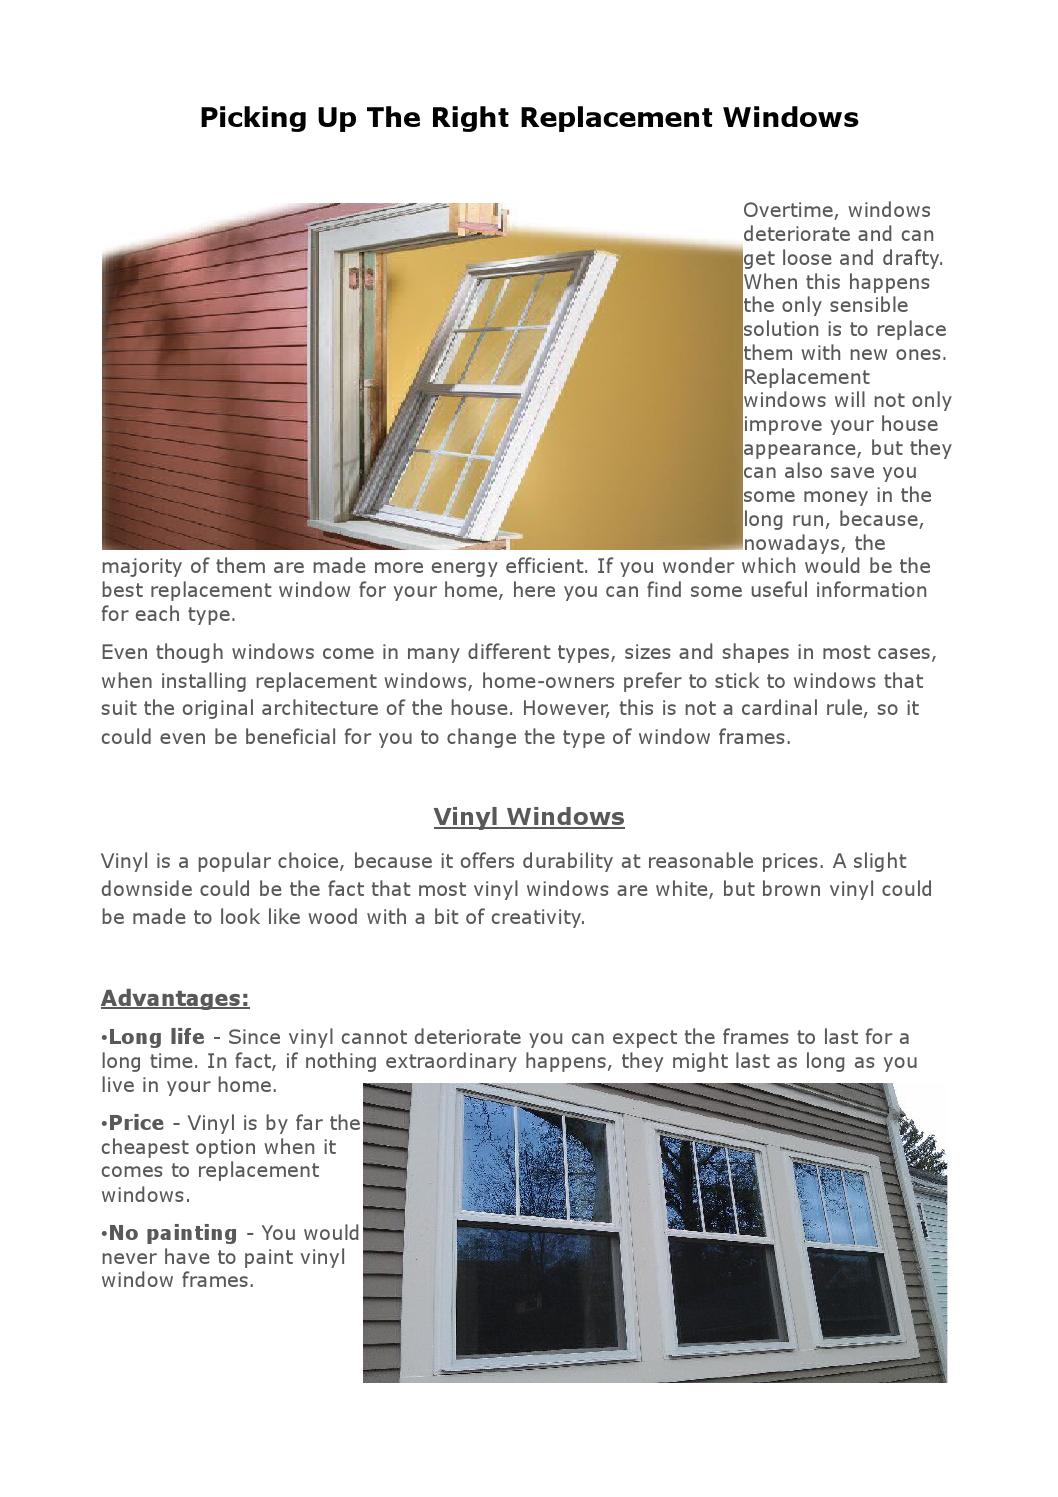 Picking Up The Right Replacement Windows By Ryan Williams